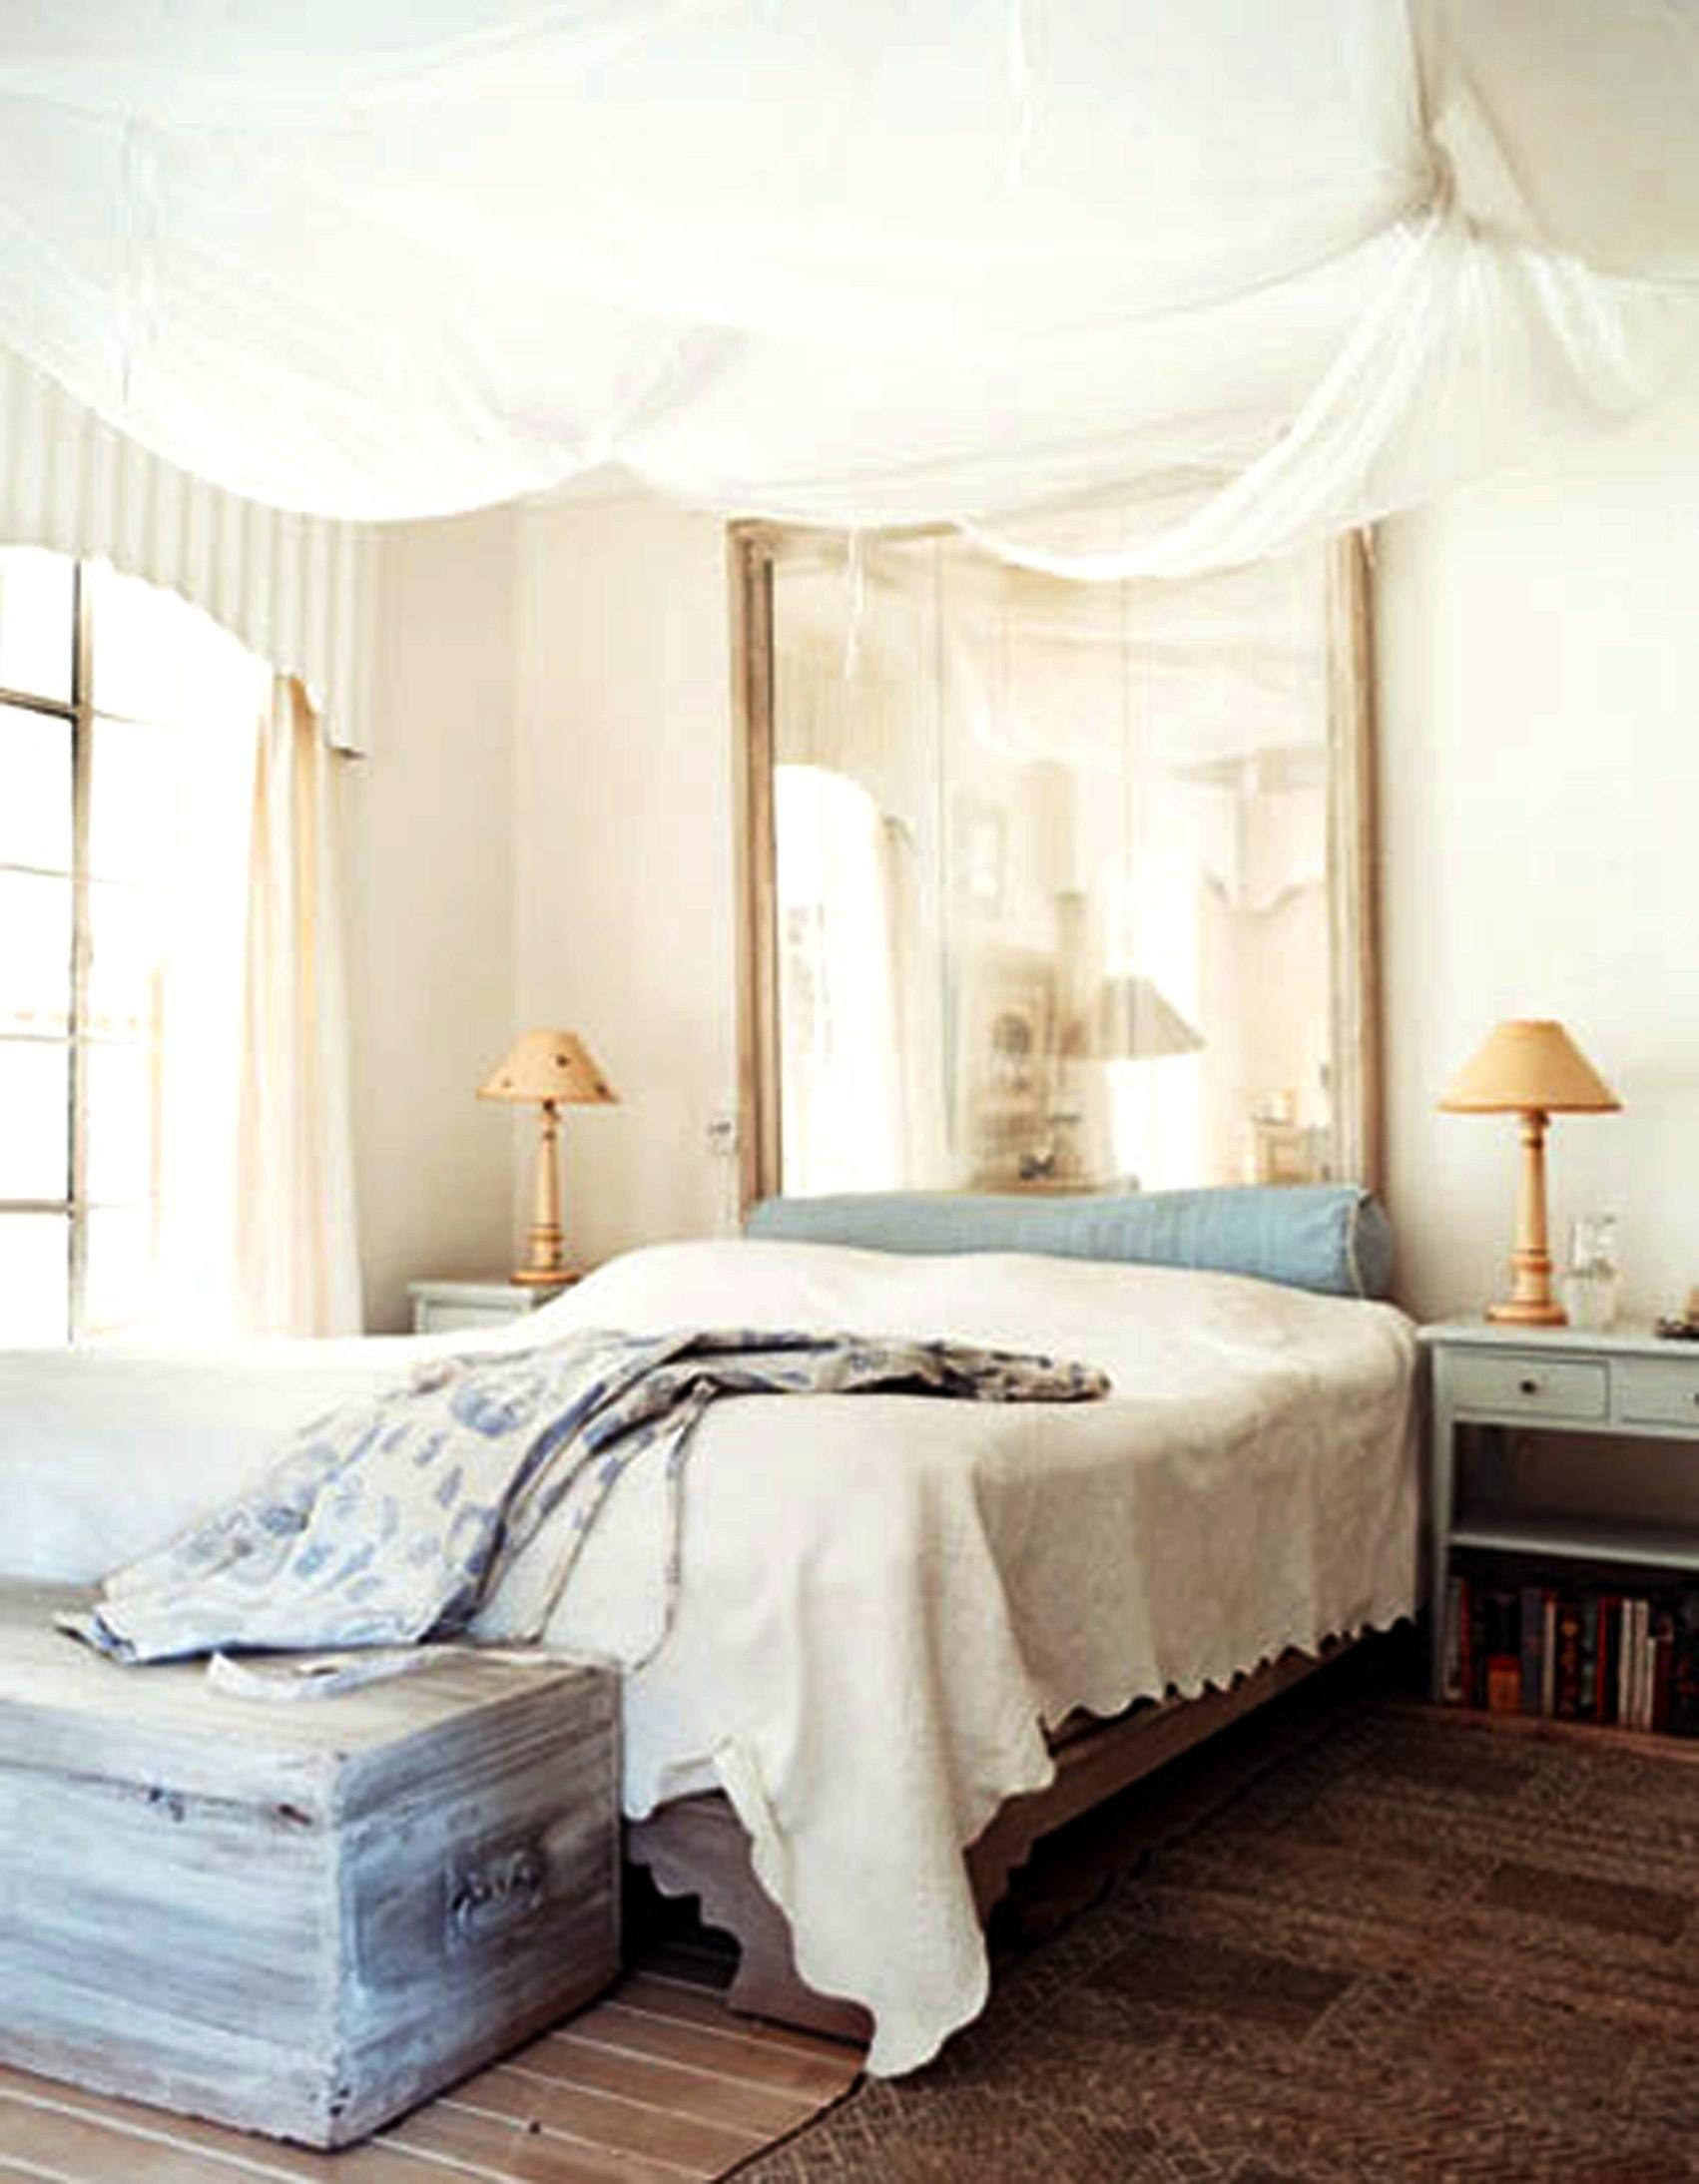 King Bed Cheap Simple Diy Rustic Old Barn Wood Crafts